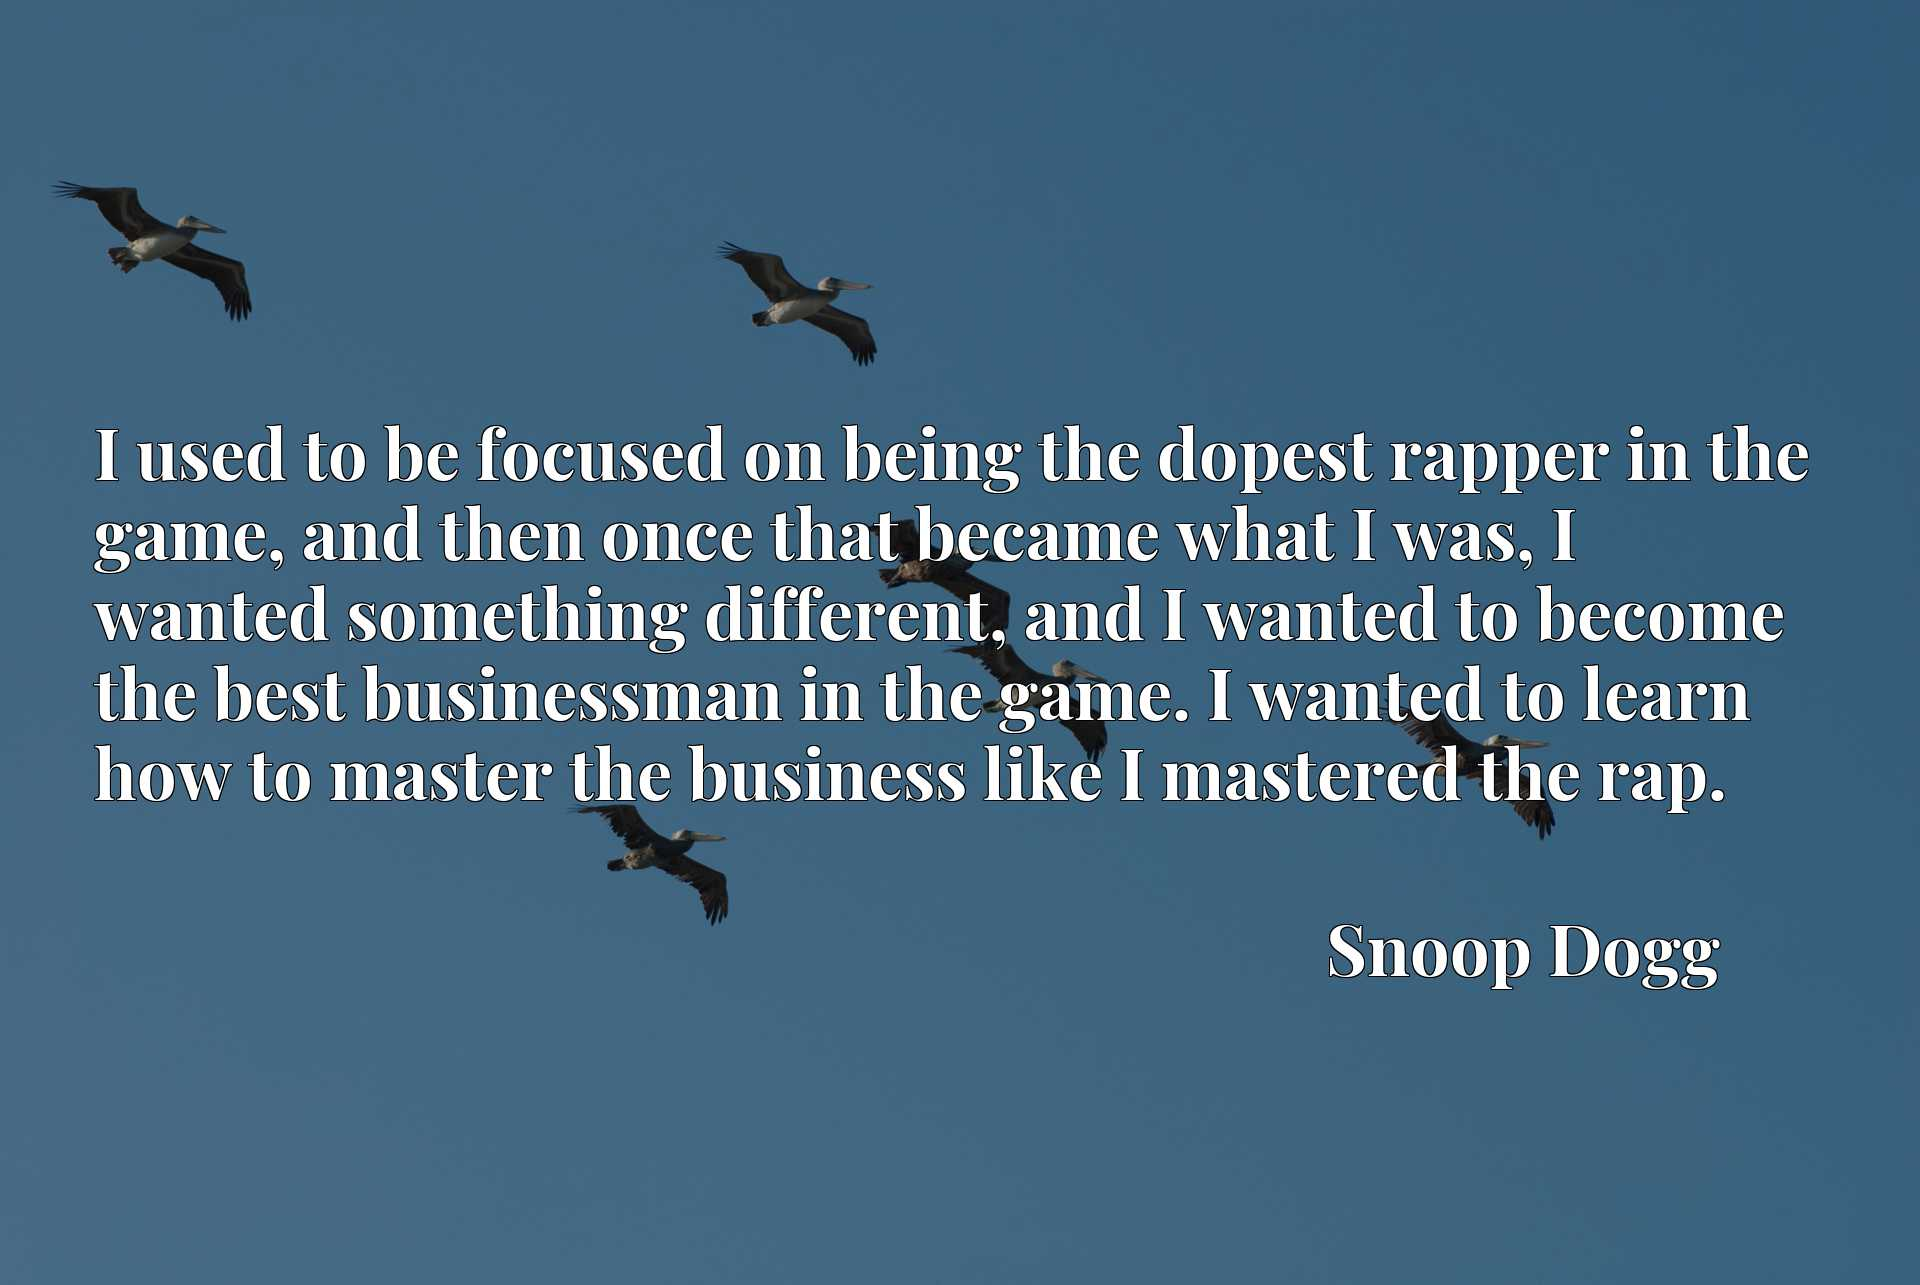 I used to be focused on being the dopest rapper in the game, and then once that became what I was, I wanted something different, and I wanted to become the best businessman in the game. I wanted to learn how to master the business like I mastered the rap.